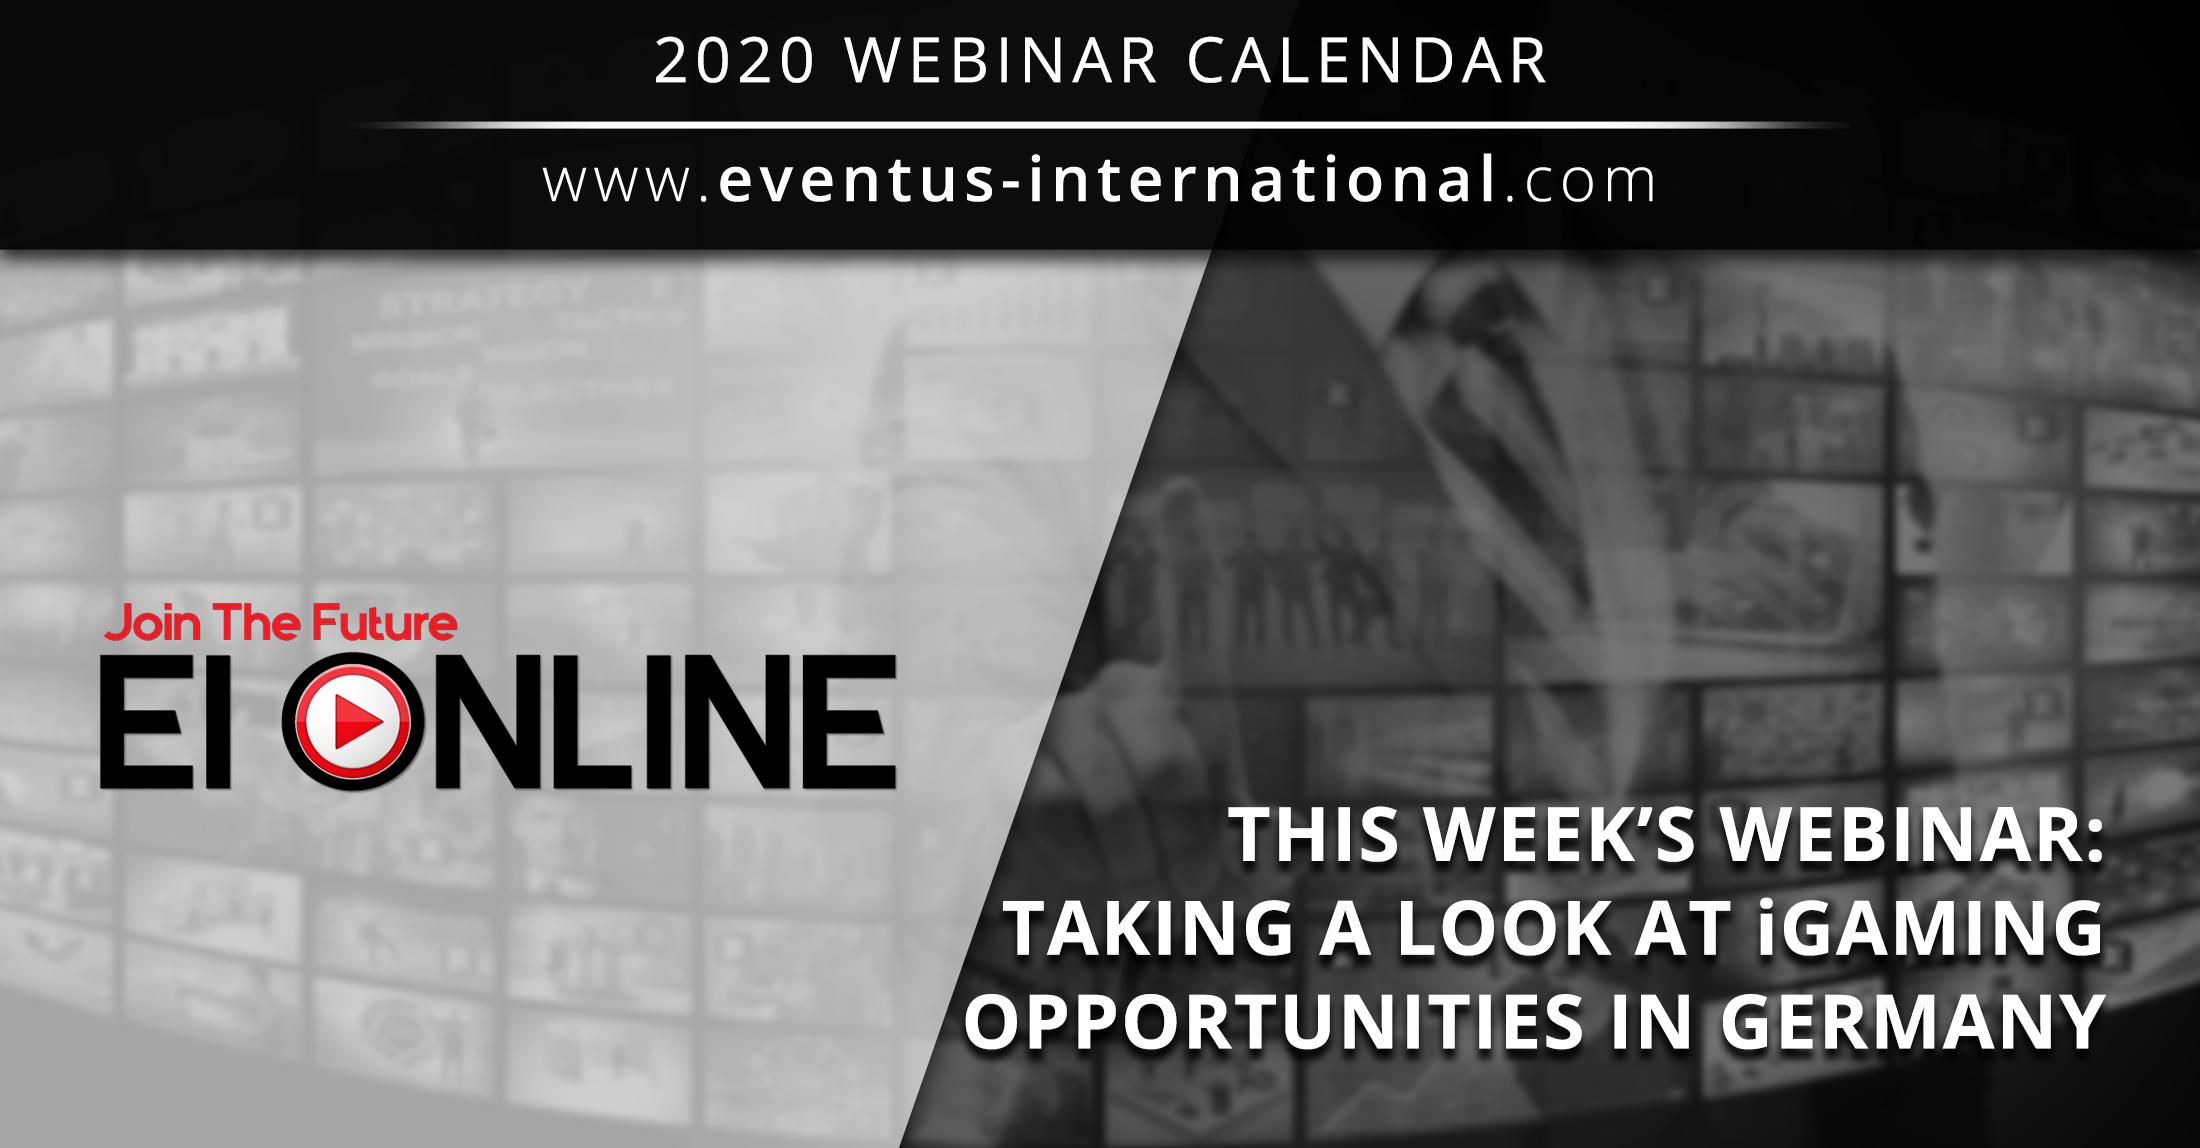 Upcoming iGaming Webinar Opportunities In Germany: EI ONLINE